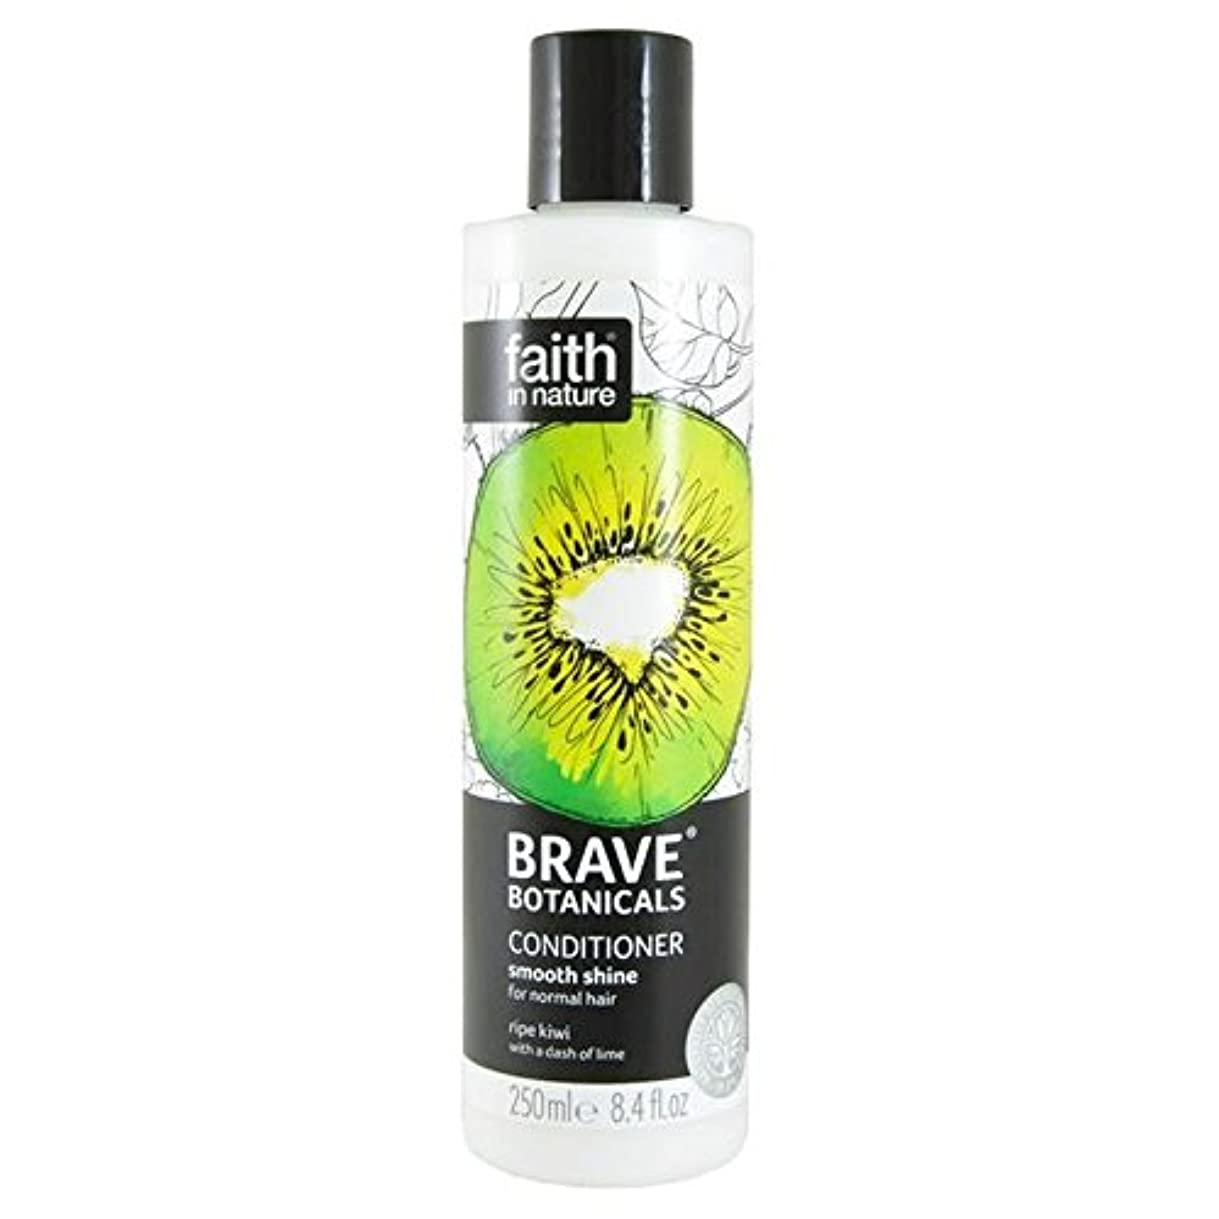 誕生日。何十人もBrave Botanicals Kiwi & Lime Smooth Shine Conditioner 250ml (Pack of 6) - (Faith In Nature) 勇敢な植物キウイ&ライムなめらかな輝...